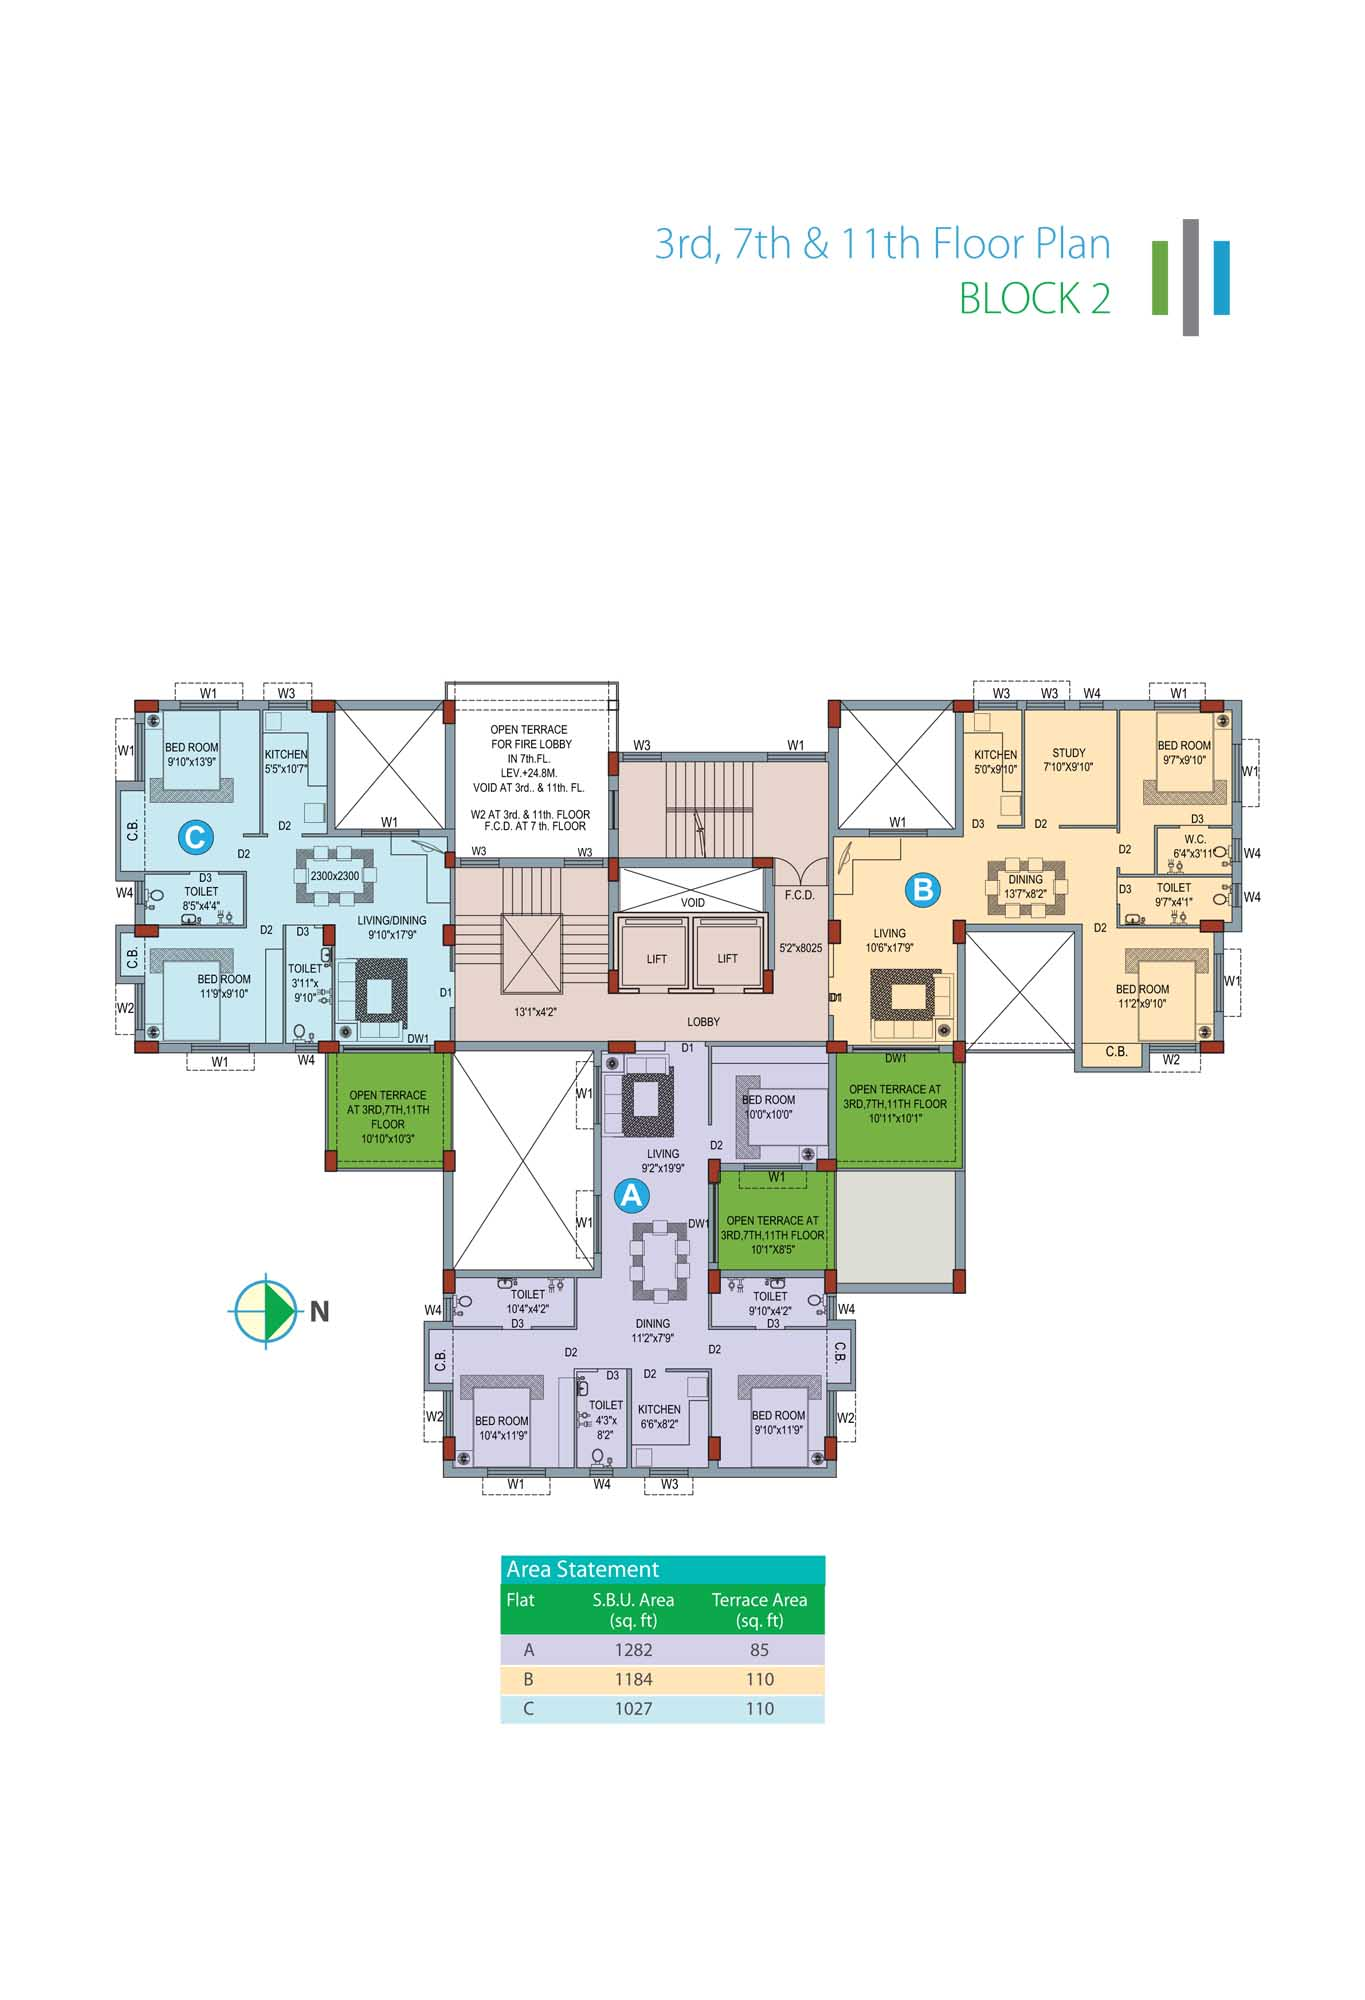 Eden Sky Terraces - Block 2 3rd,7th & 11th Floor Plan